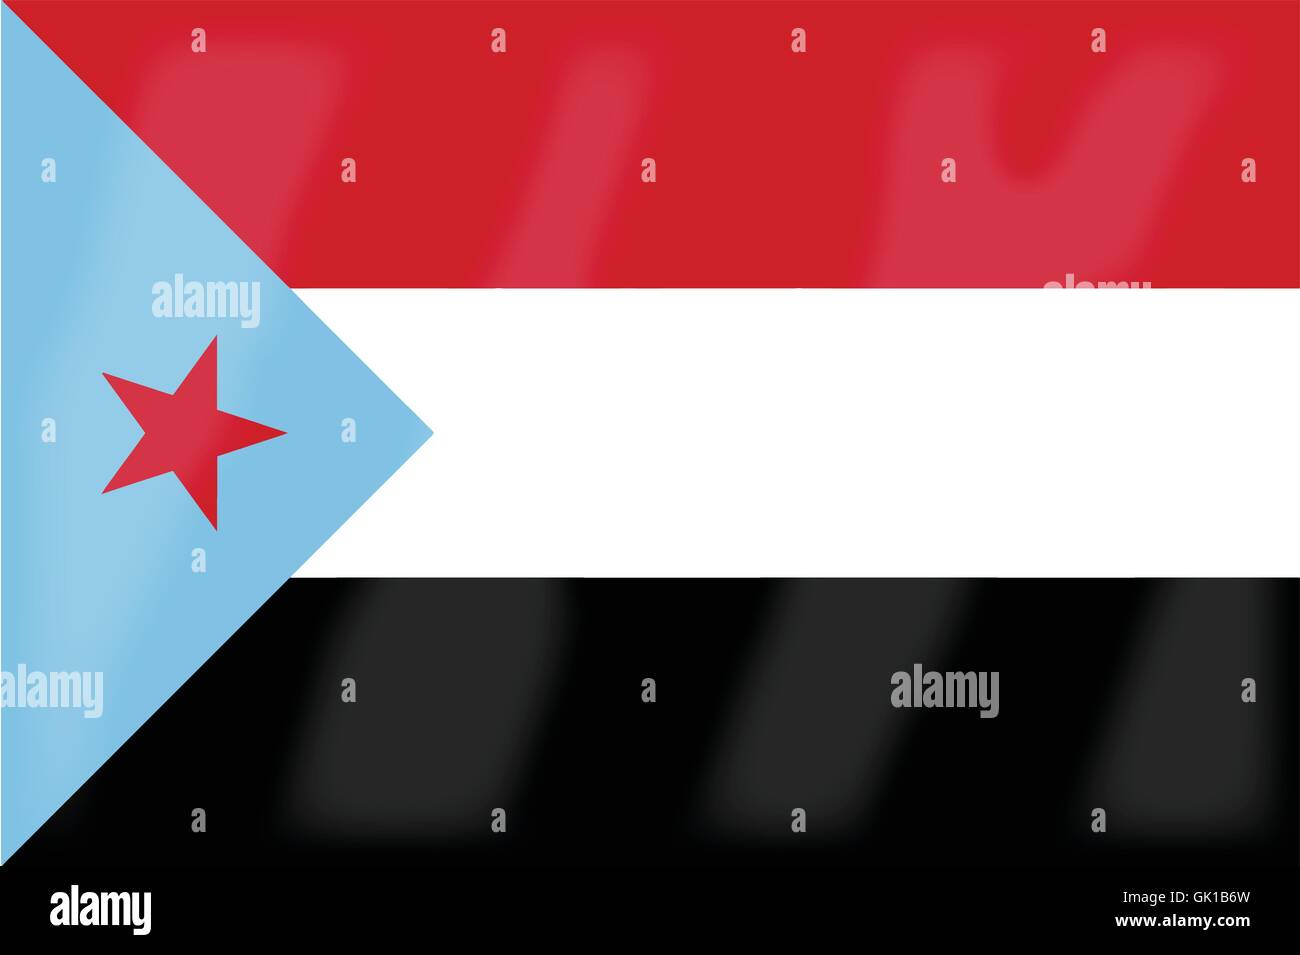 Yemen Flag Stock Vector